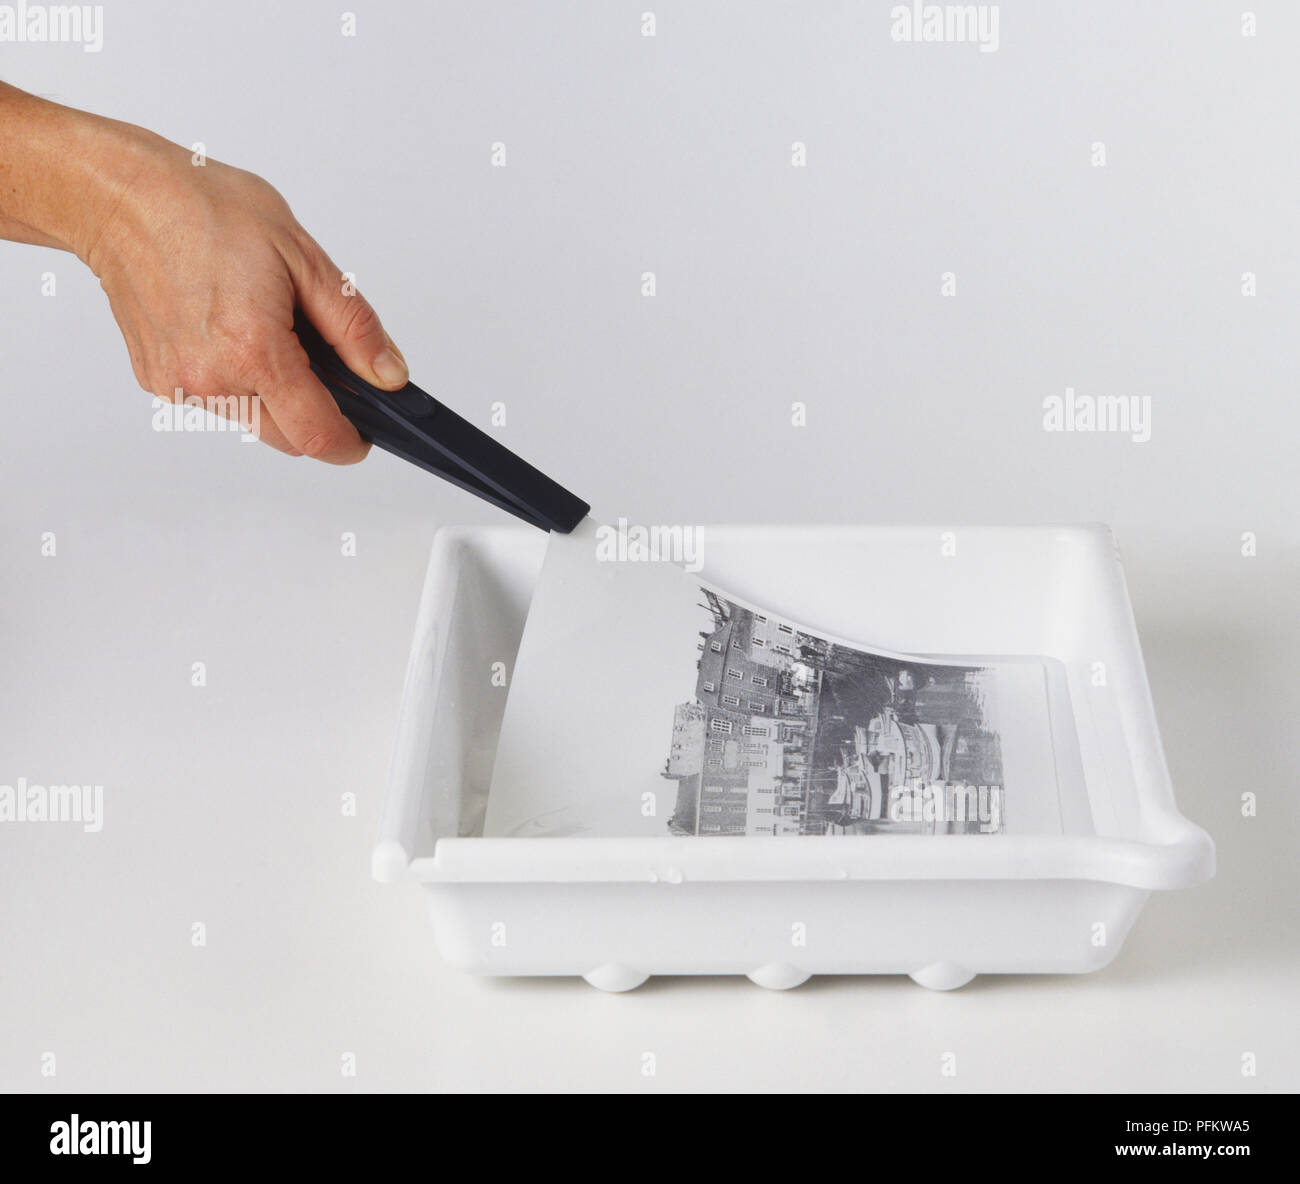 Black and white photographic print being pulled out bath of developer solution with plastic tongs, side view. - Stock Image